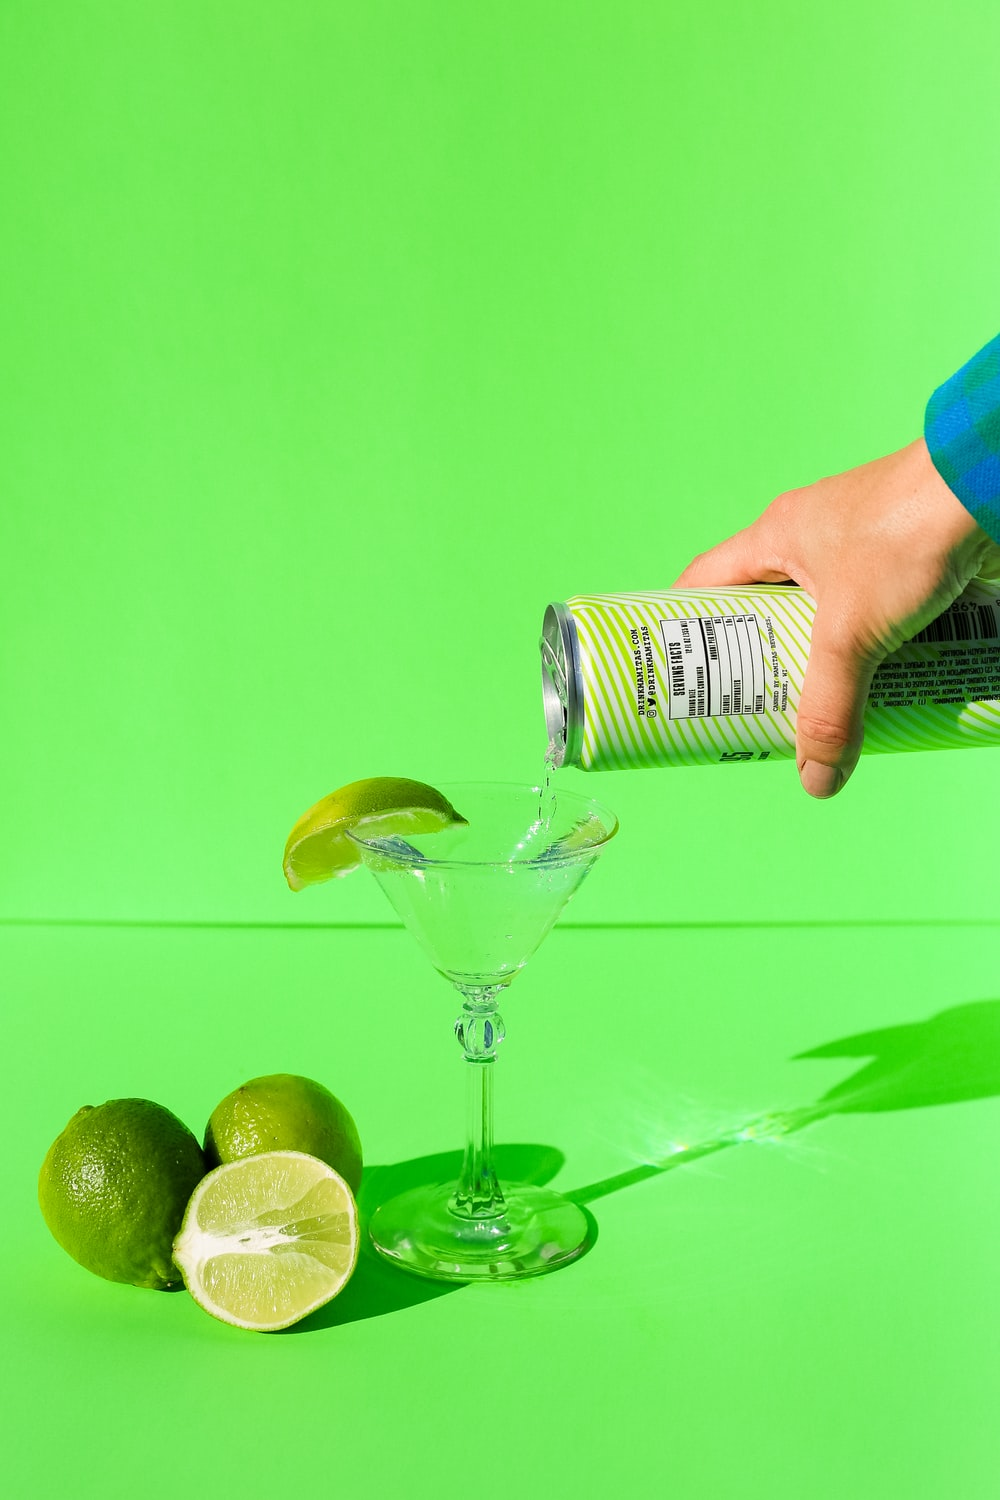 person holding clear wine glass with green liquid